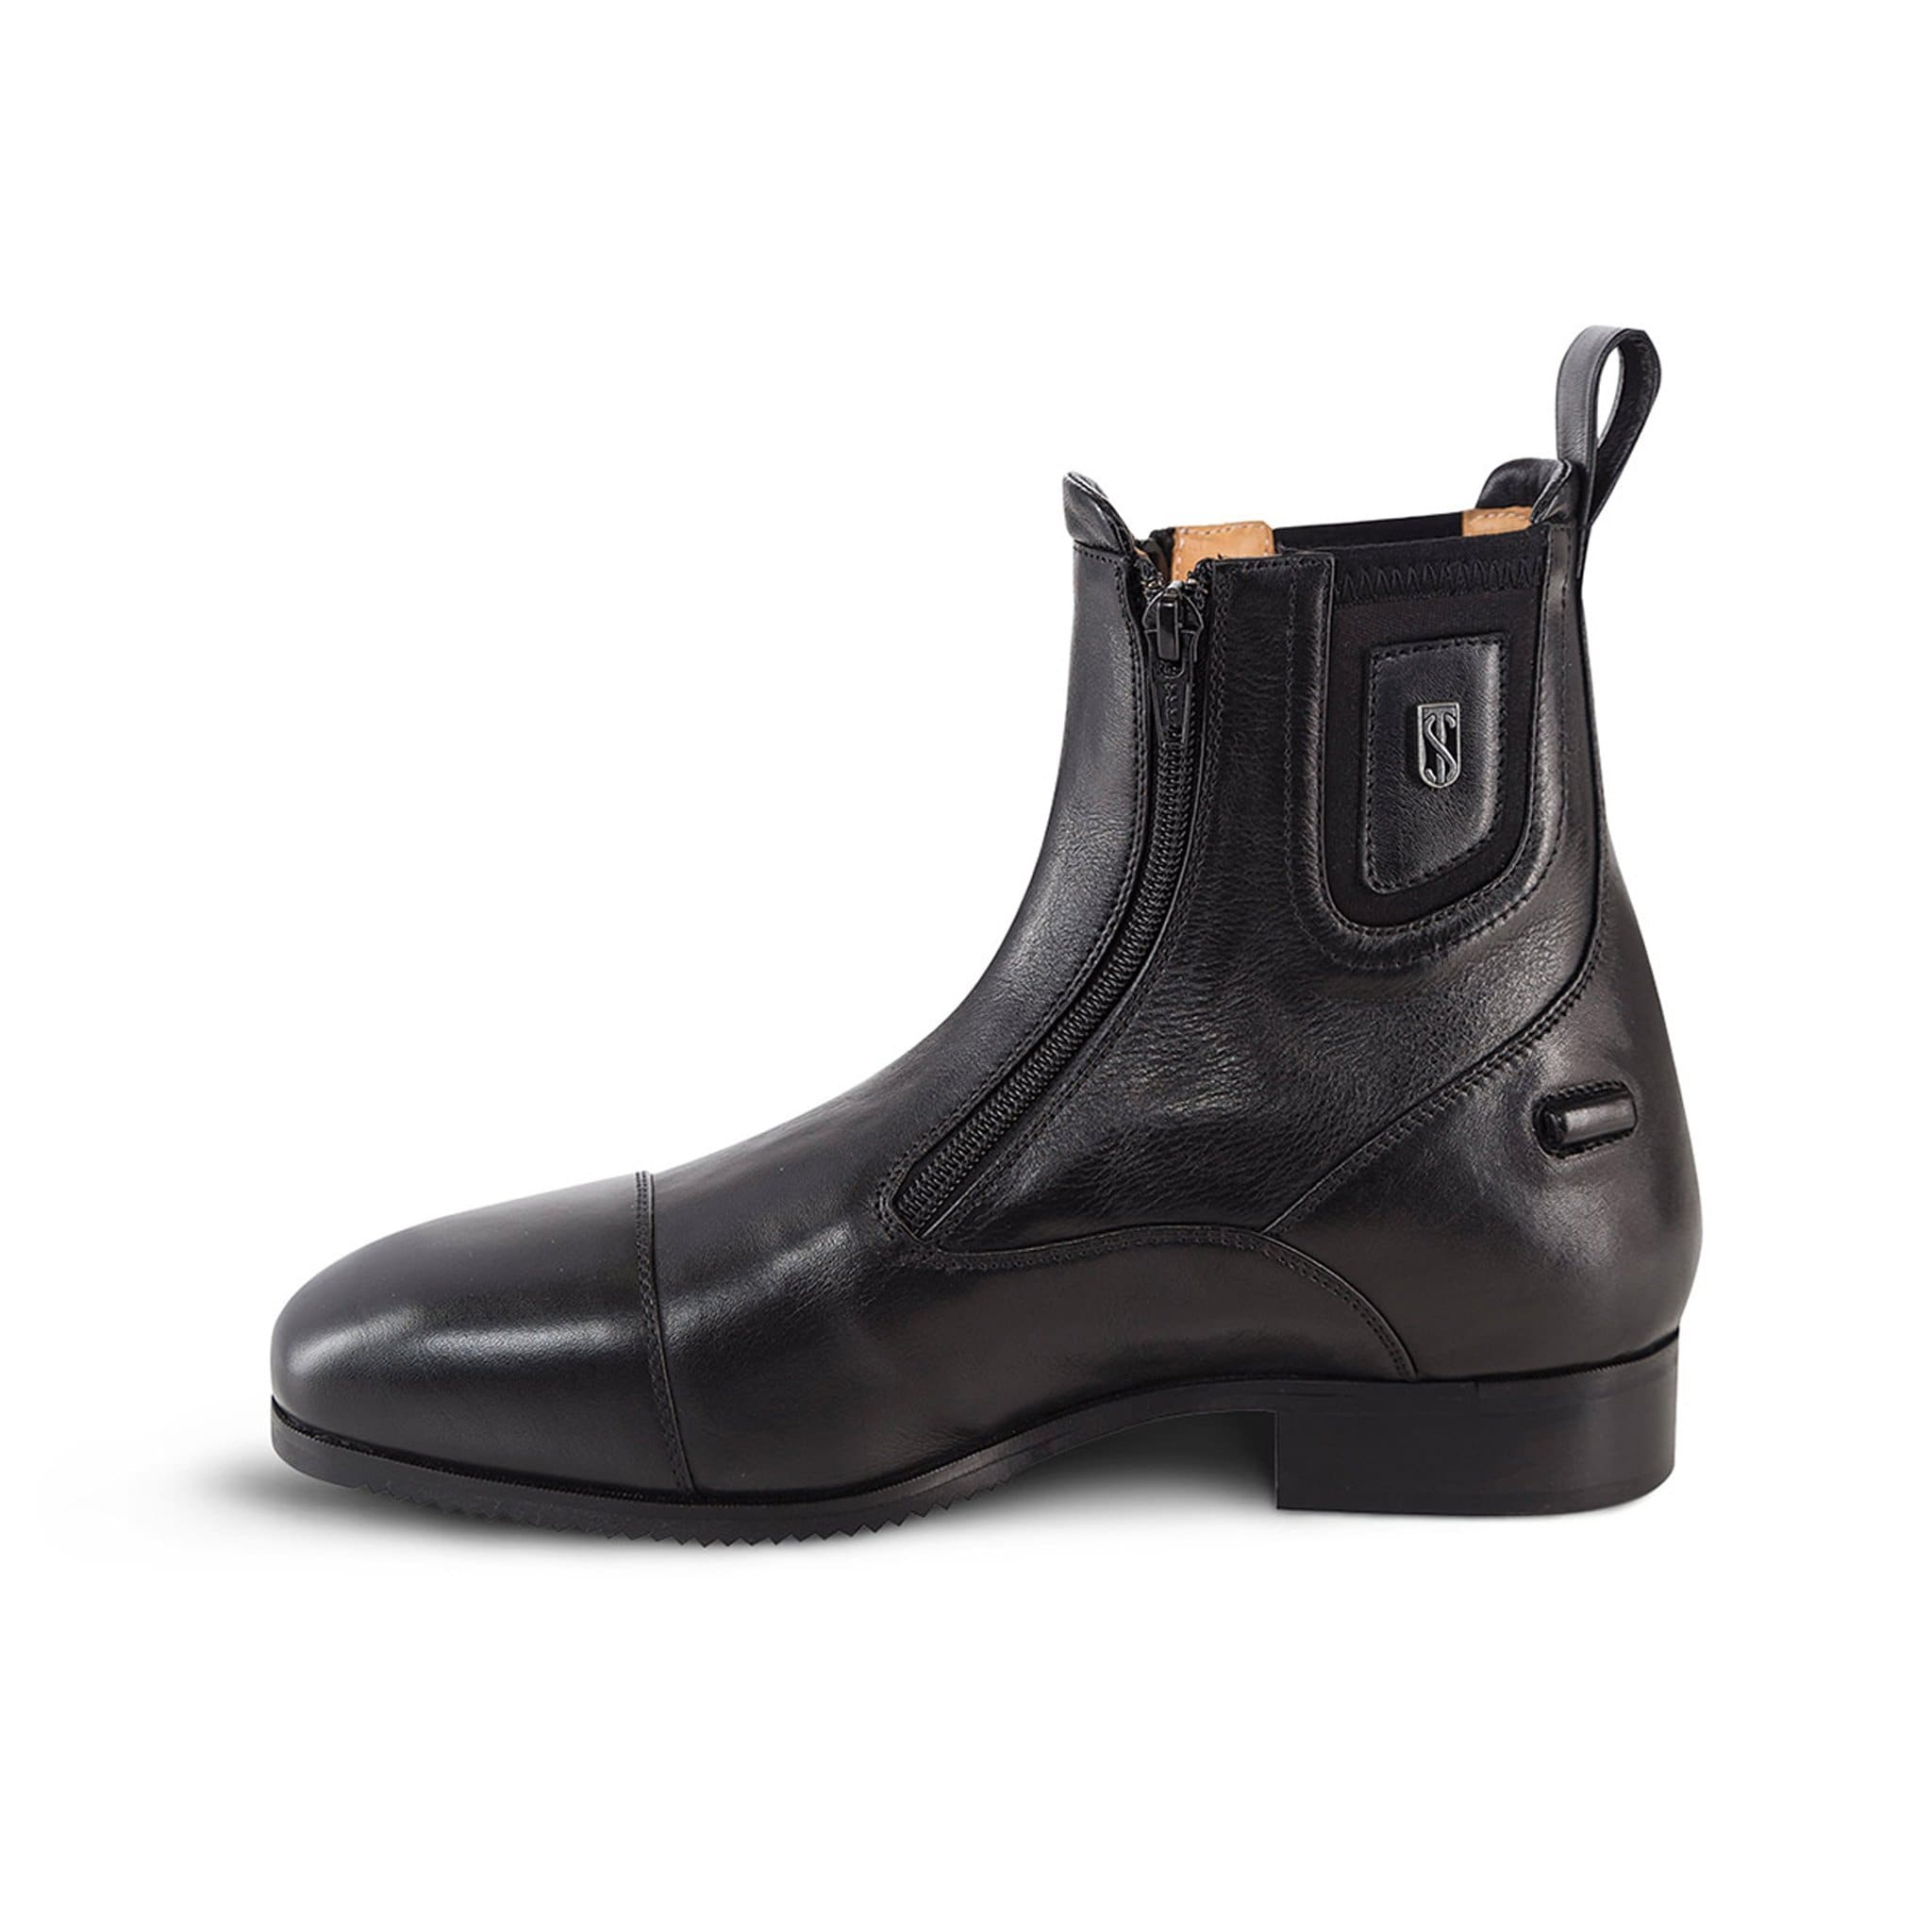 Tredstep Medici II Paddock Boot with Double Zip in Black